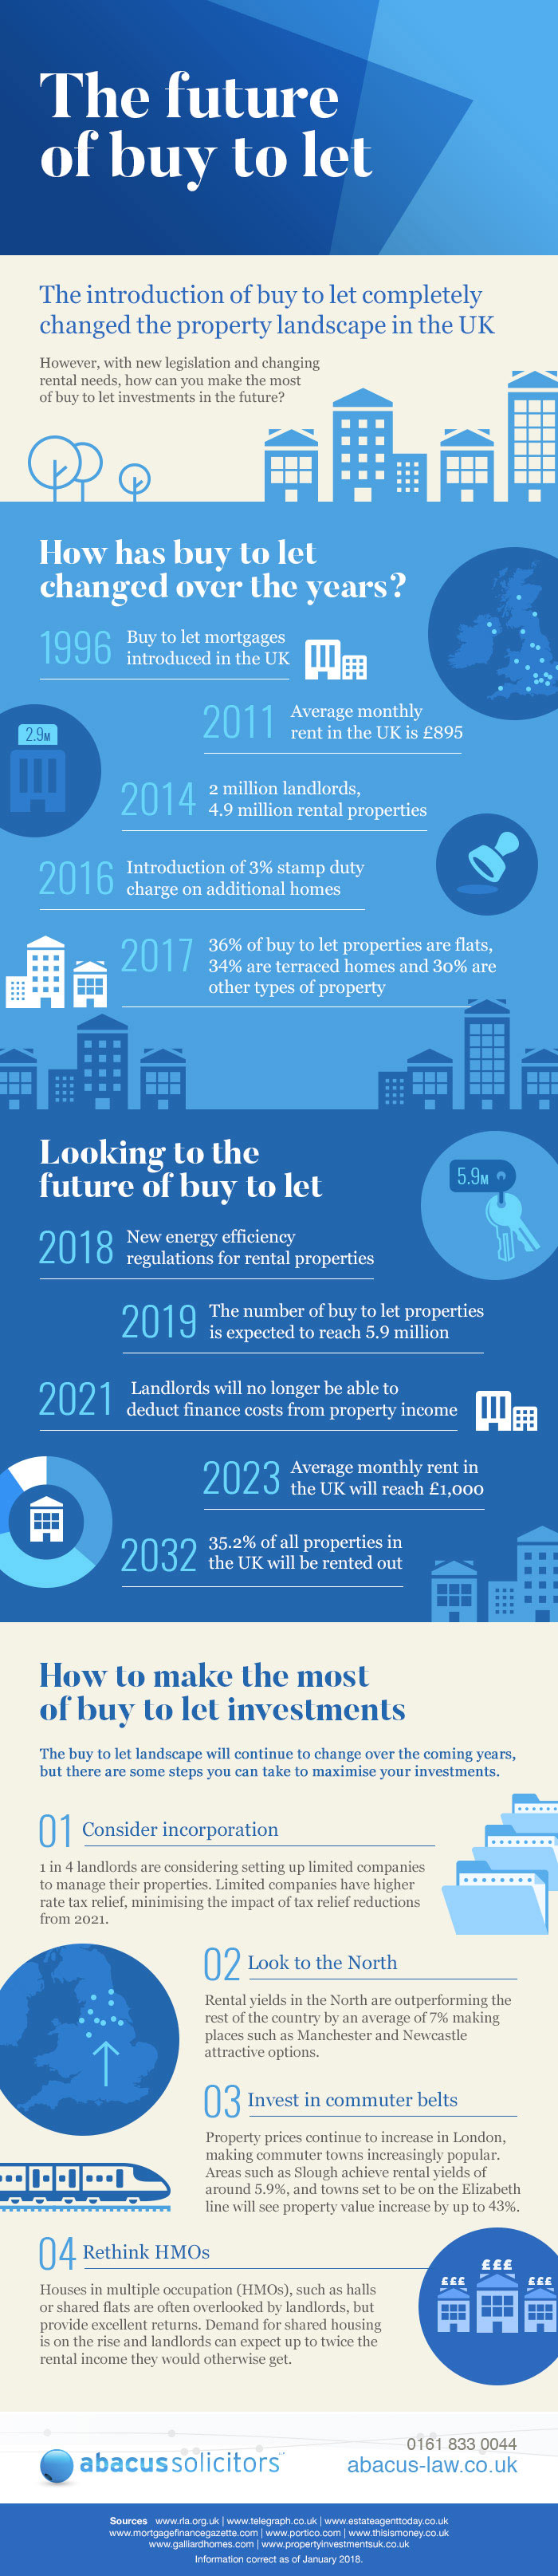 buy to let infographic